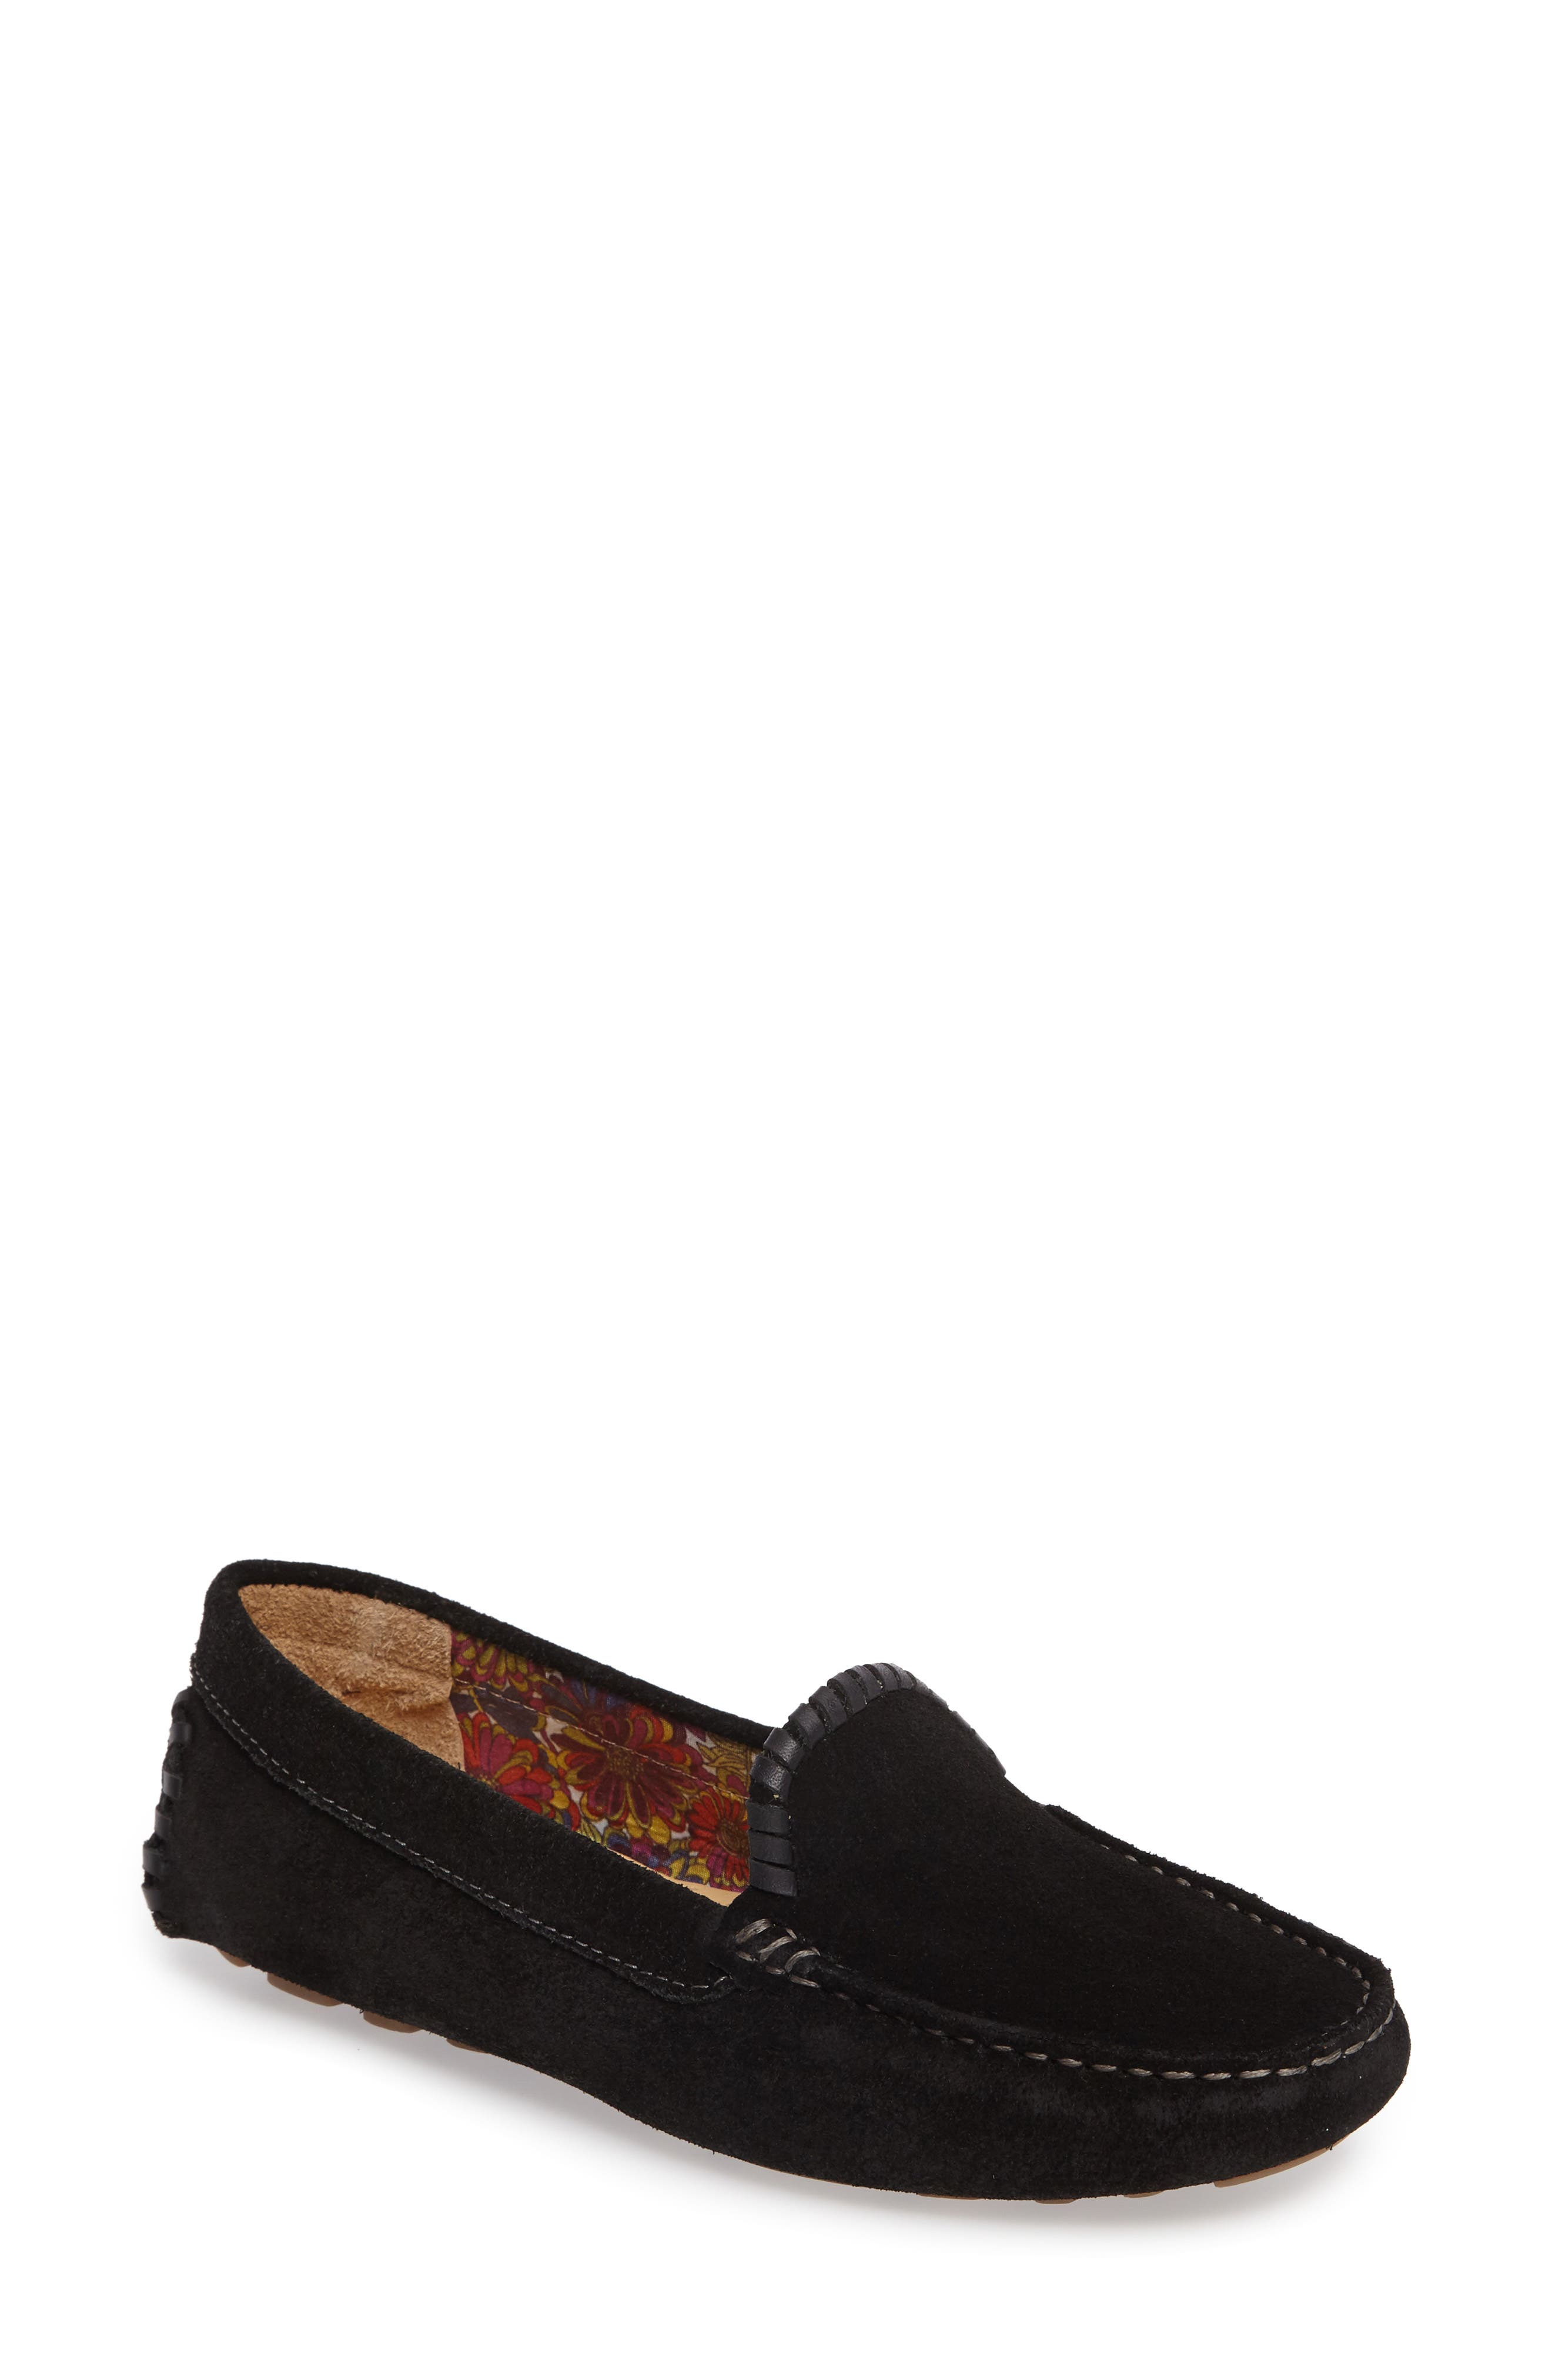 Taylor Driving Loafer,                             Main thumbnail 1, color,                             BLACK SUEDE